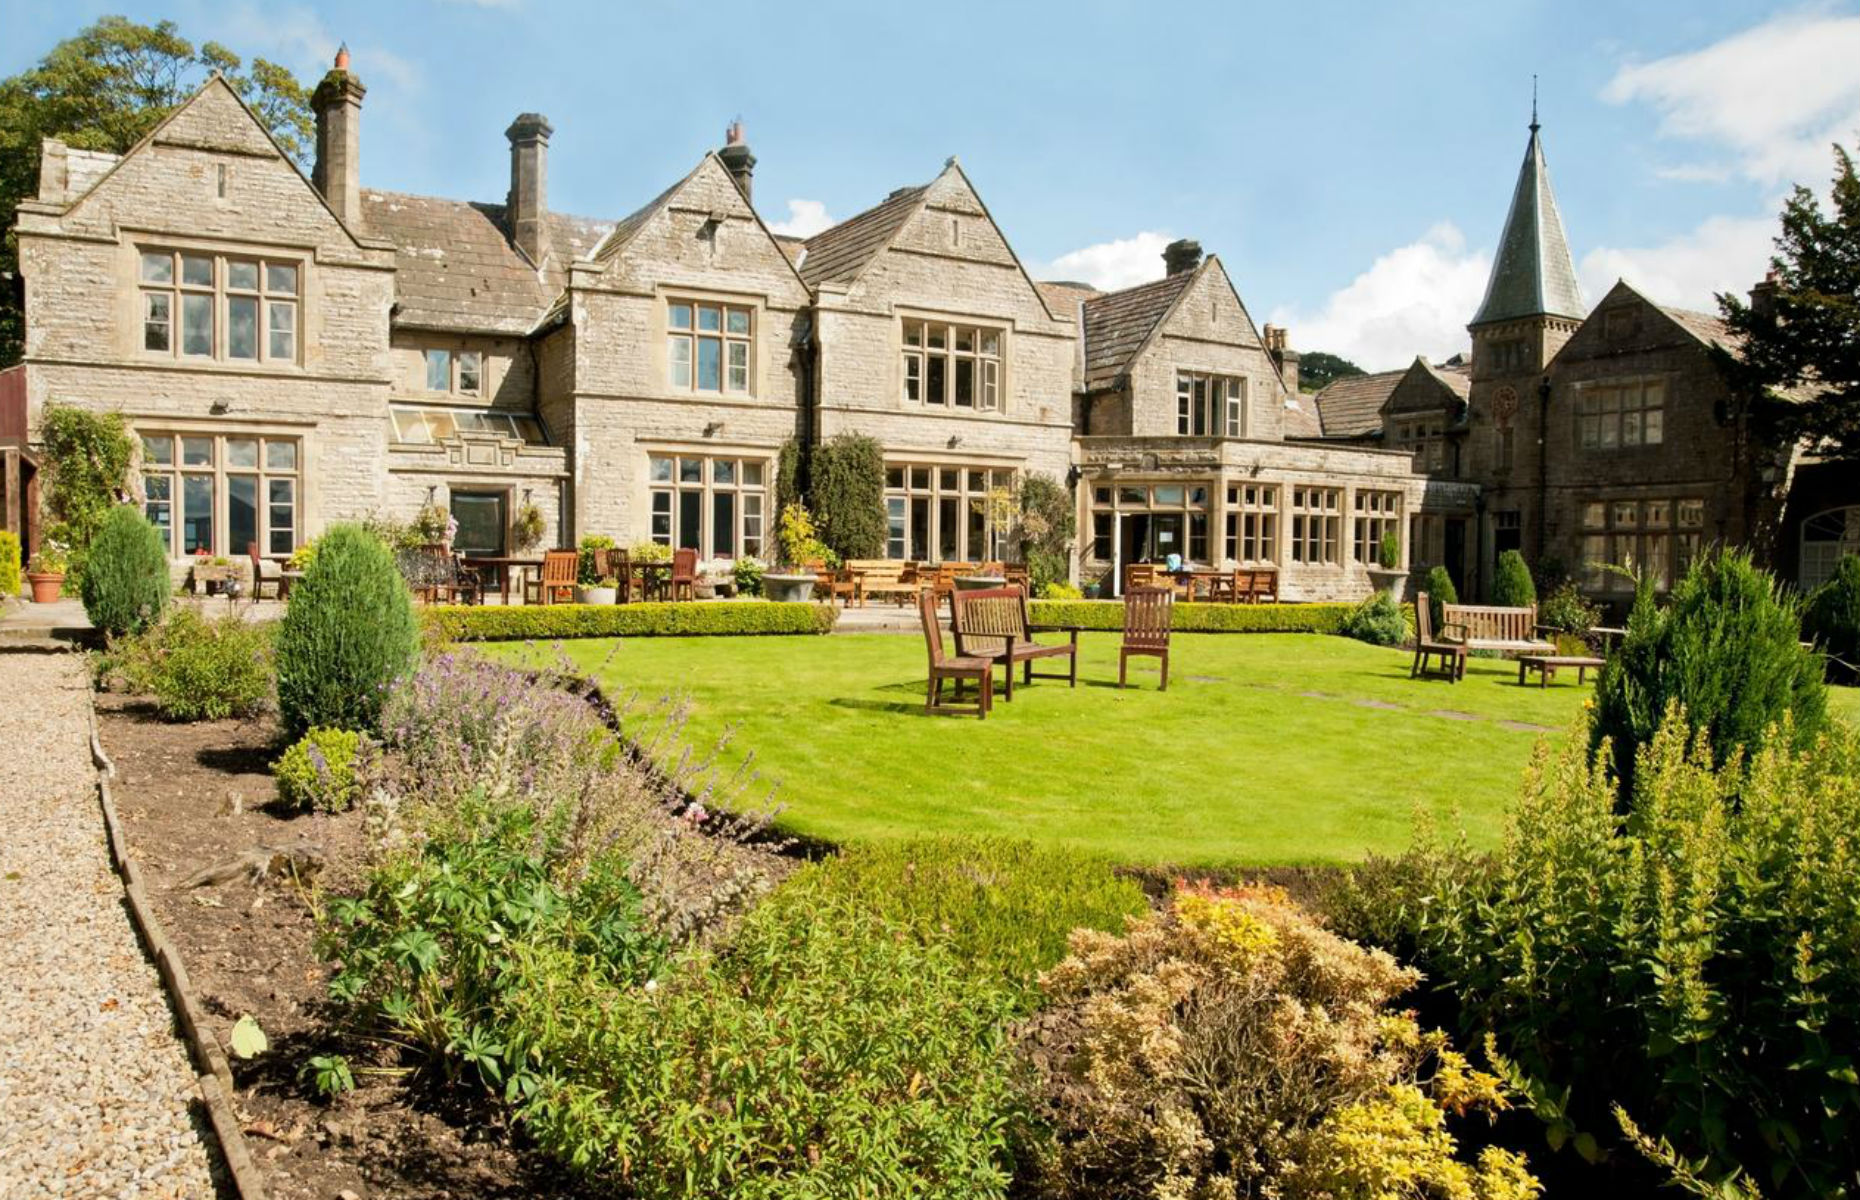 Simonstone Hall (Image: Booking.com)